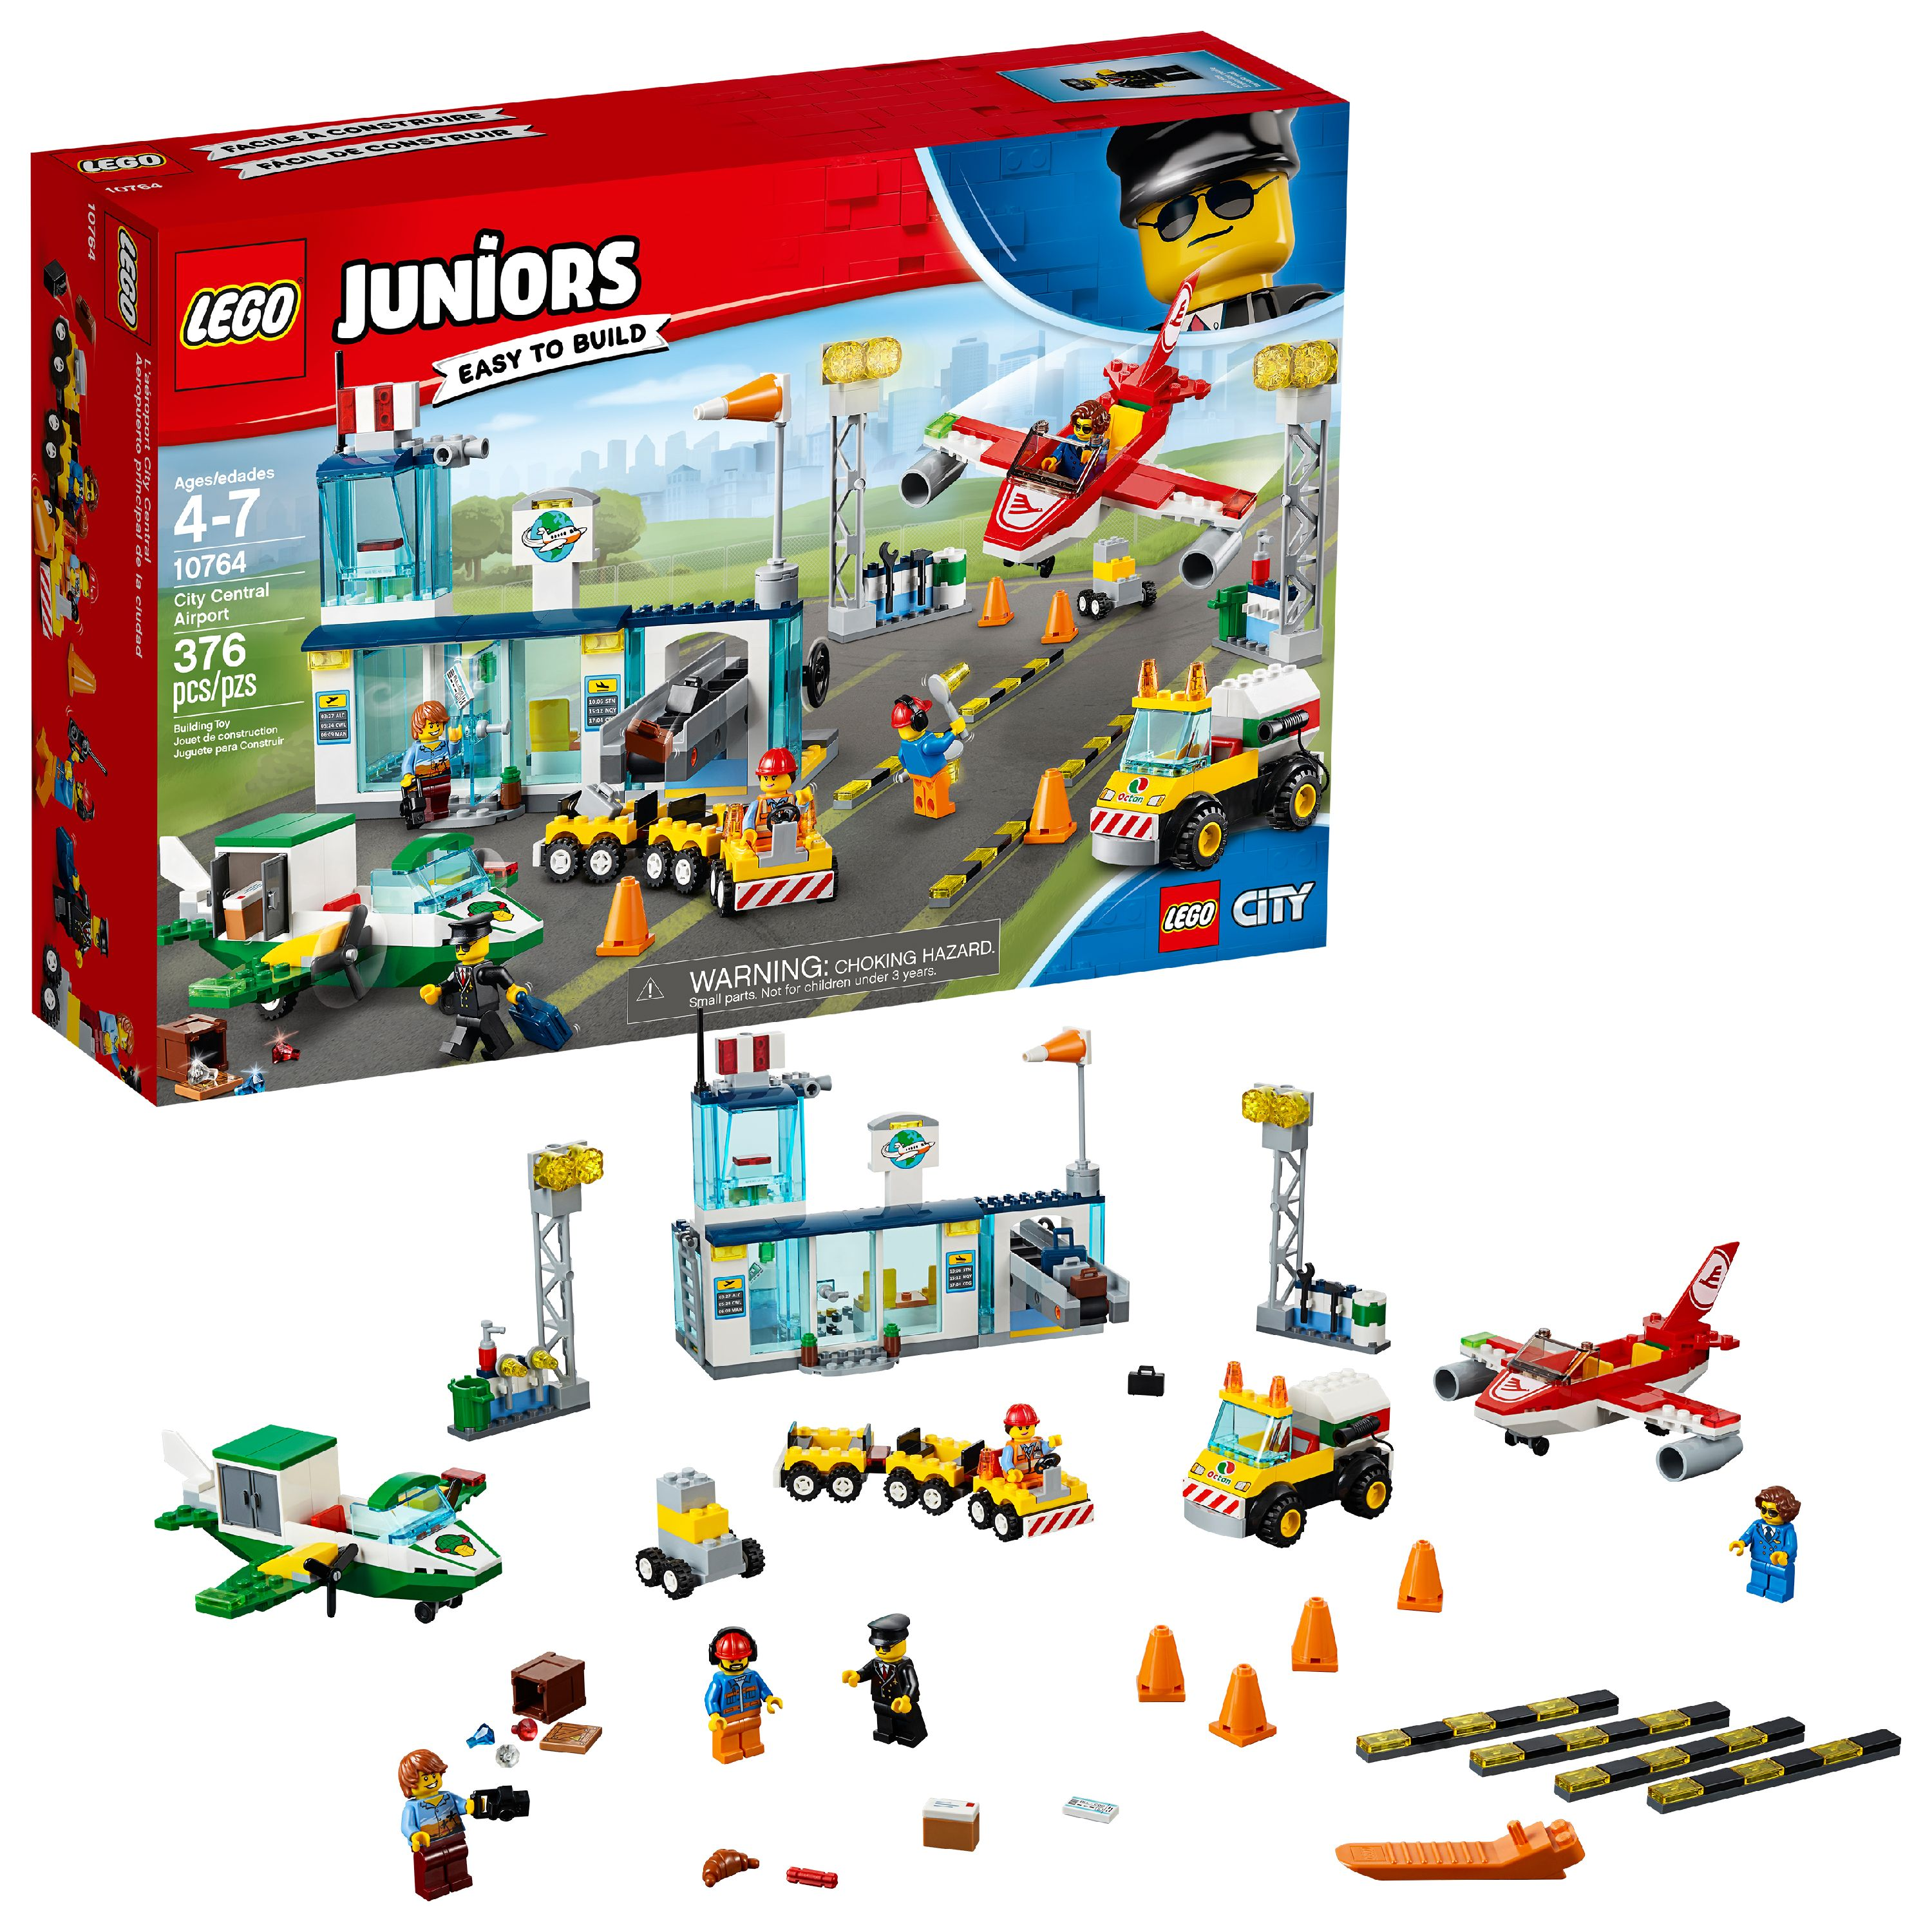 LEGO Juniors City Central Airport 10764 (376 Pieces)